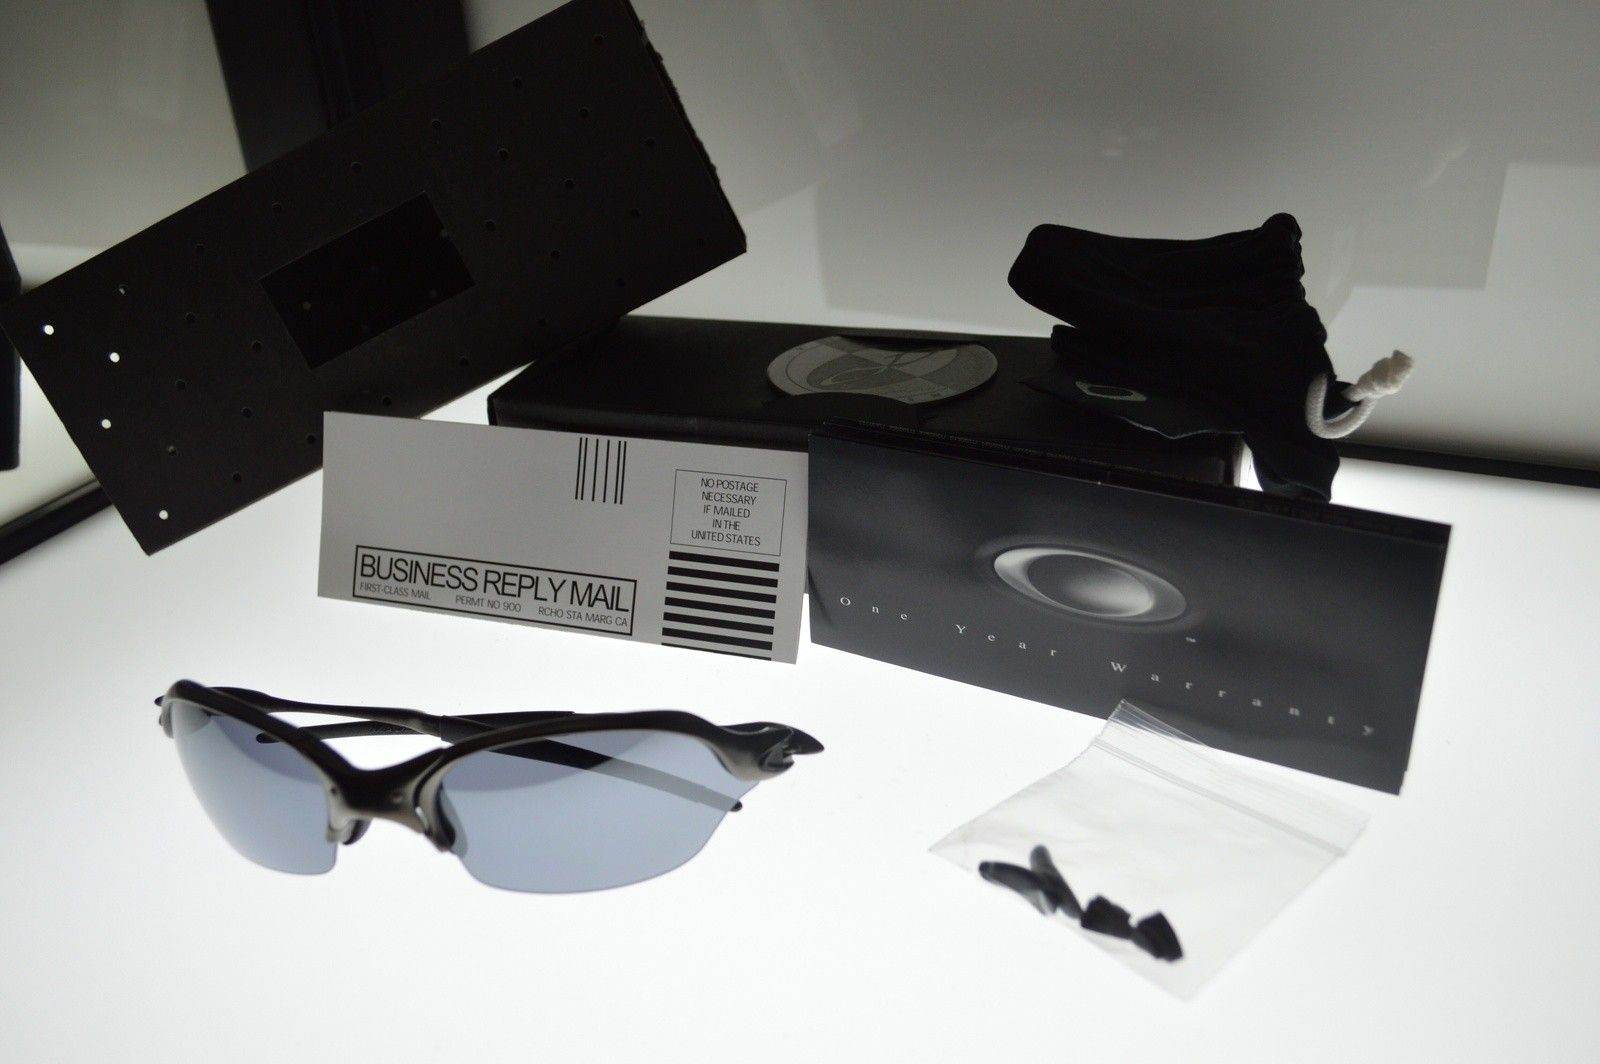 BNIB Romeo 2 Carbon/Black iridium sku#04-137 (CLOSED - CONSOLIDATING THREADS) - image.jpg